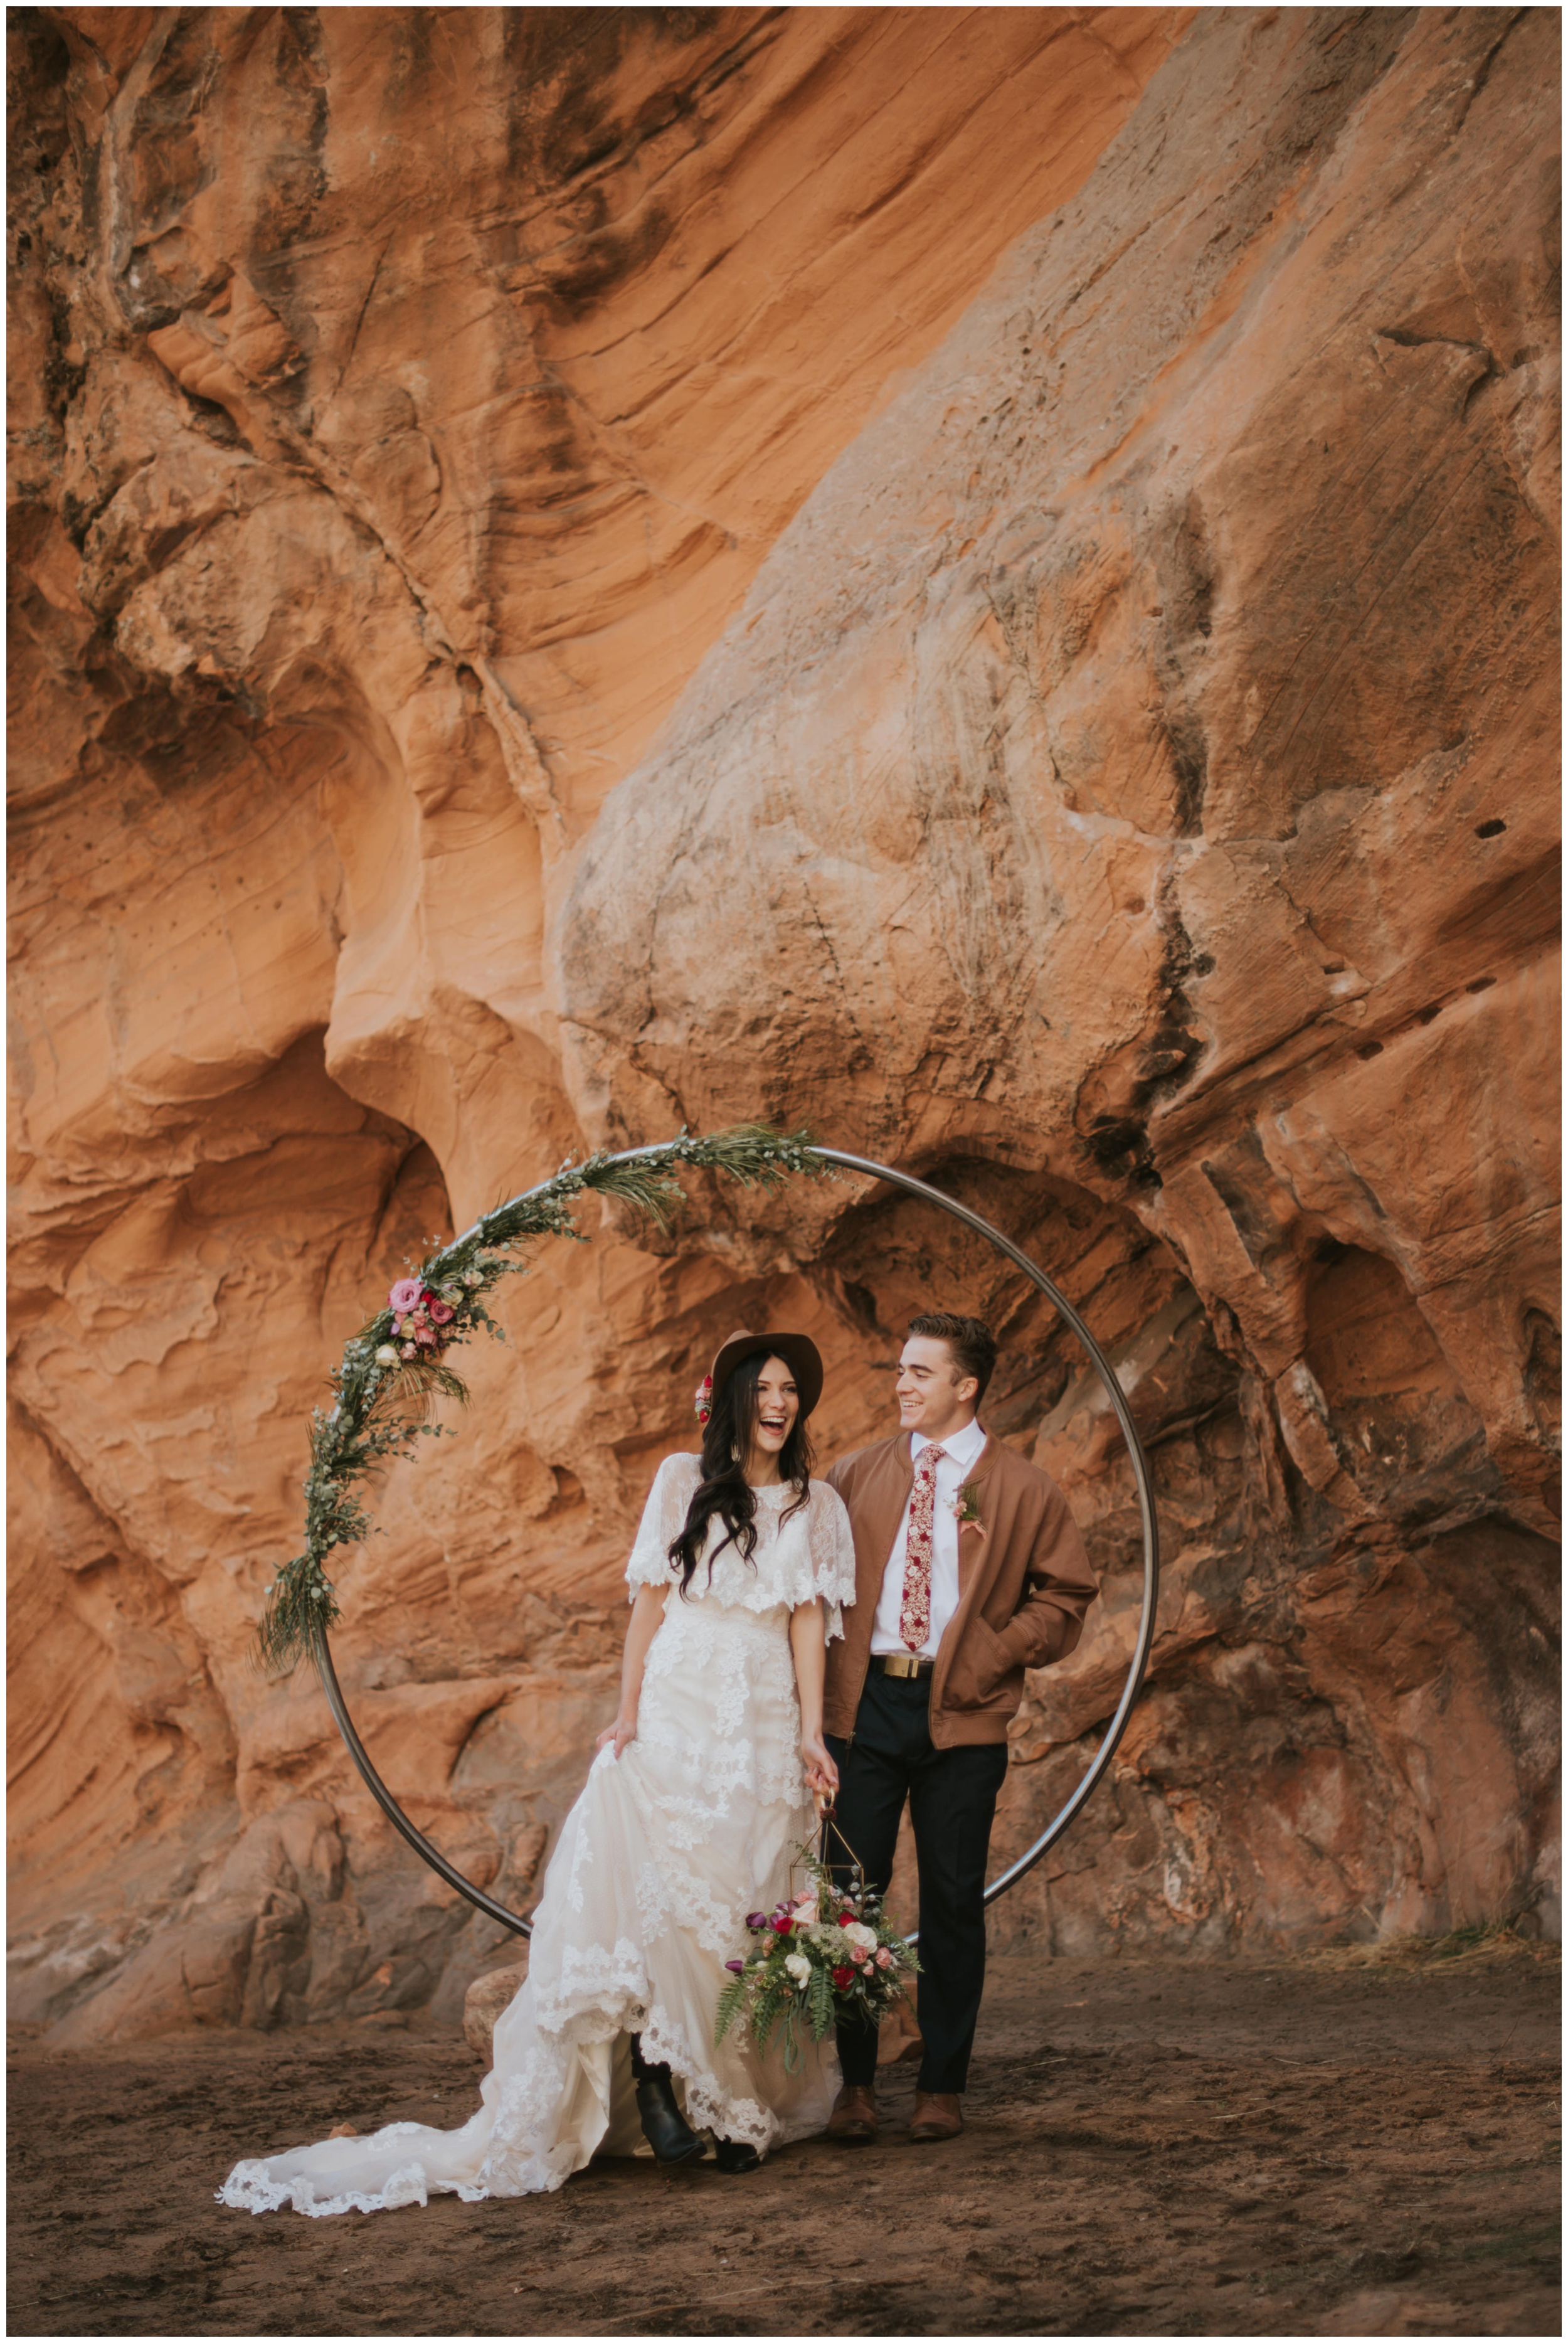 redrockutah-idahophotographer-utahphotographer-wedding-19.jpg